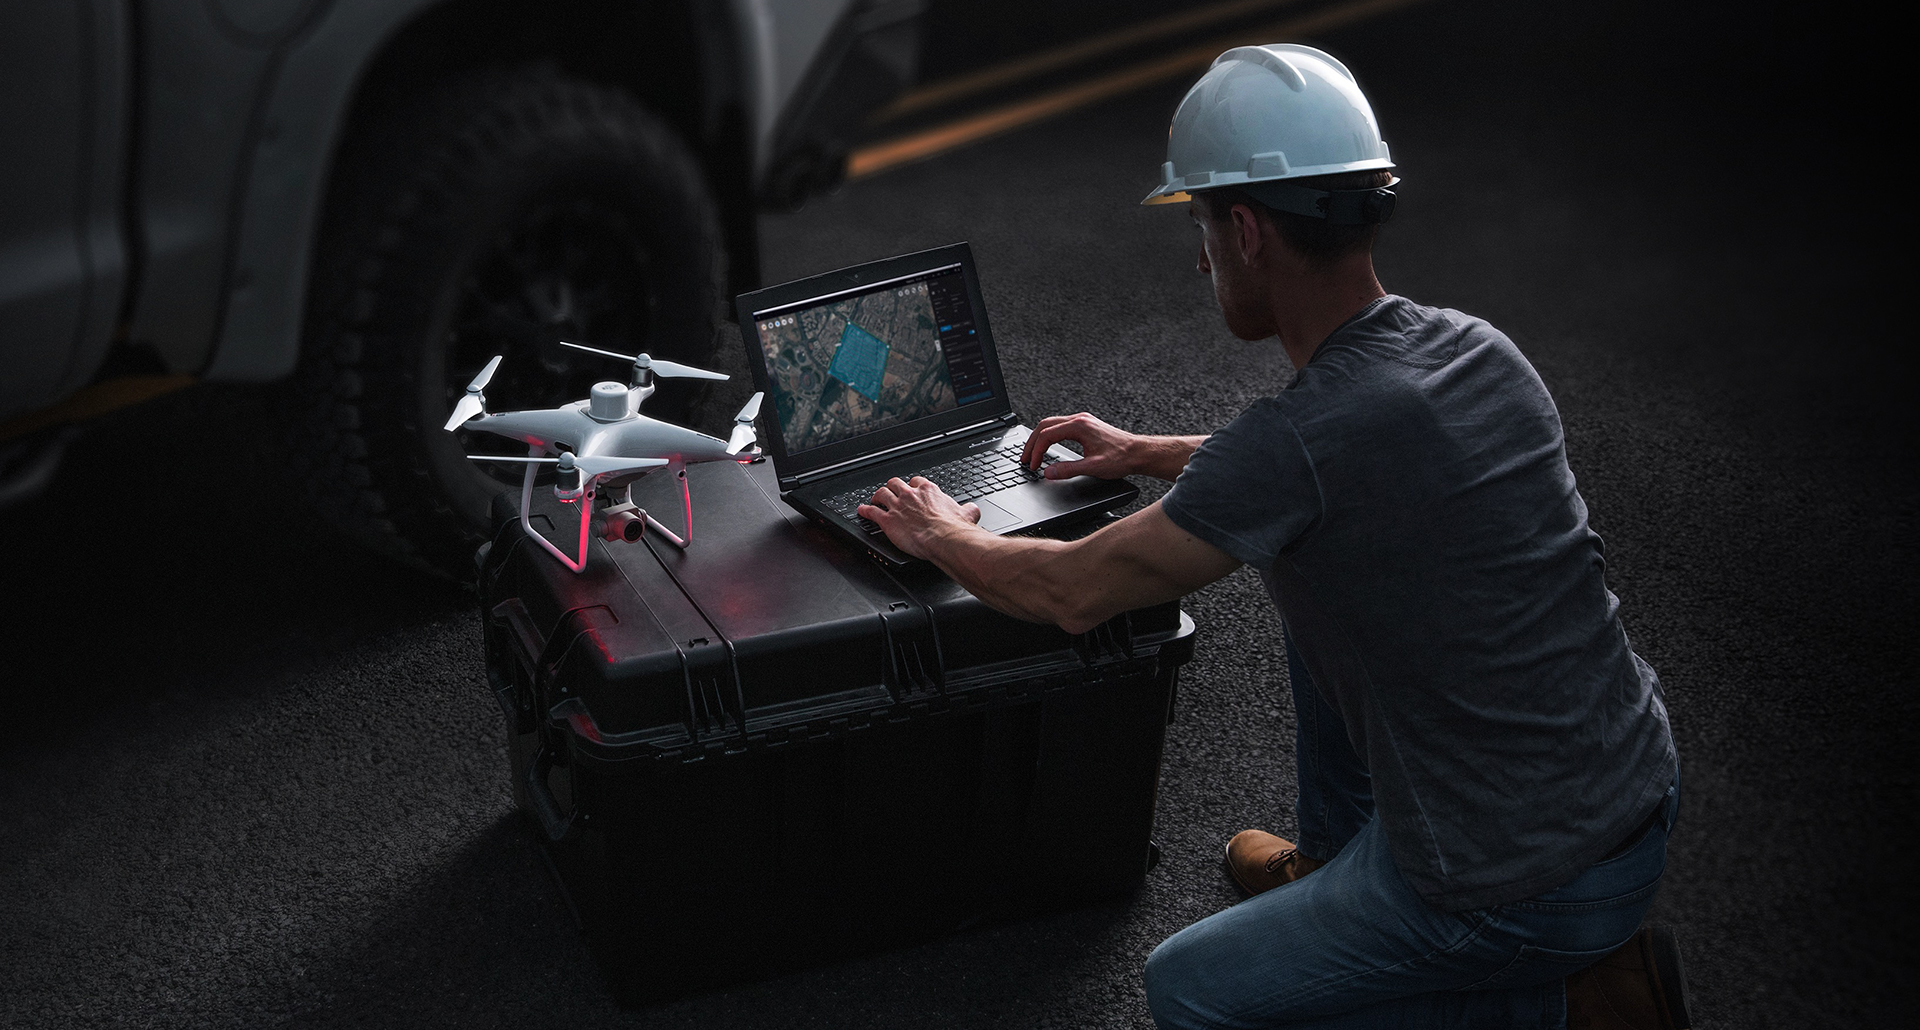 Diy Drone Software Terra For Drone Software Vendors As Dji Launches Mapping